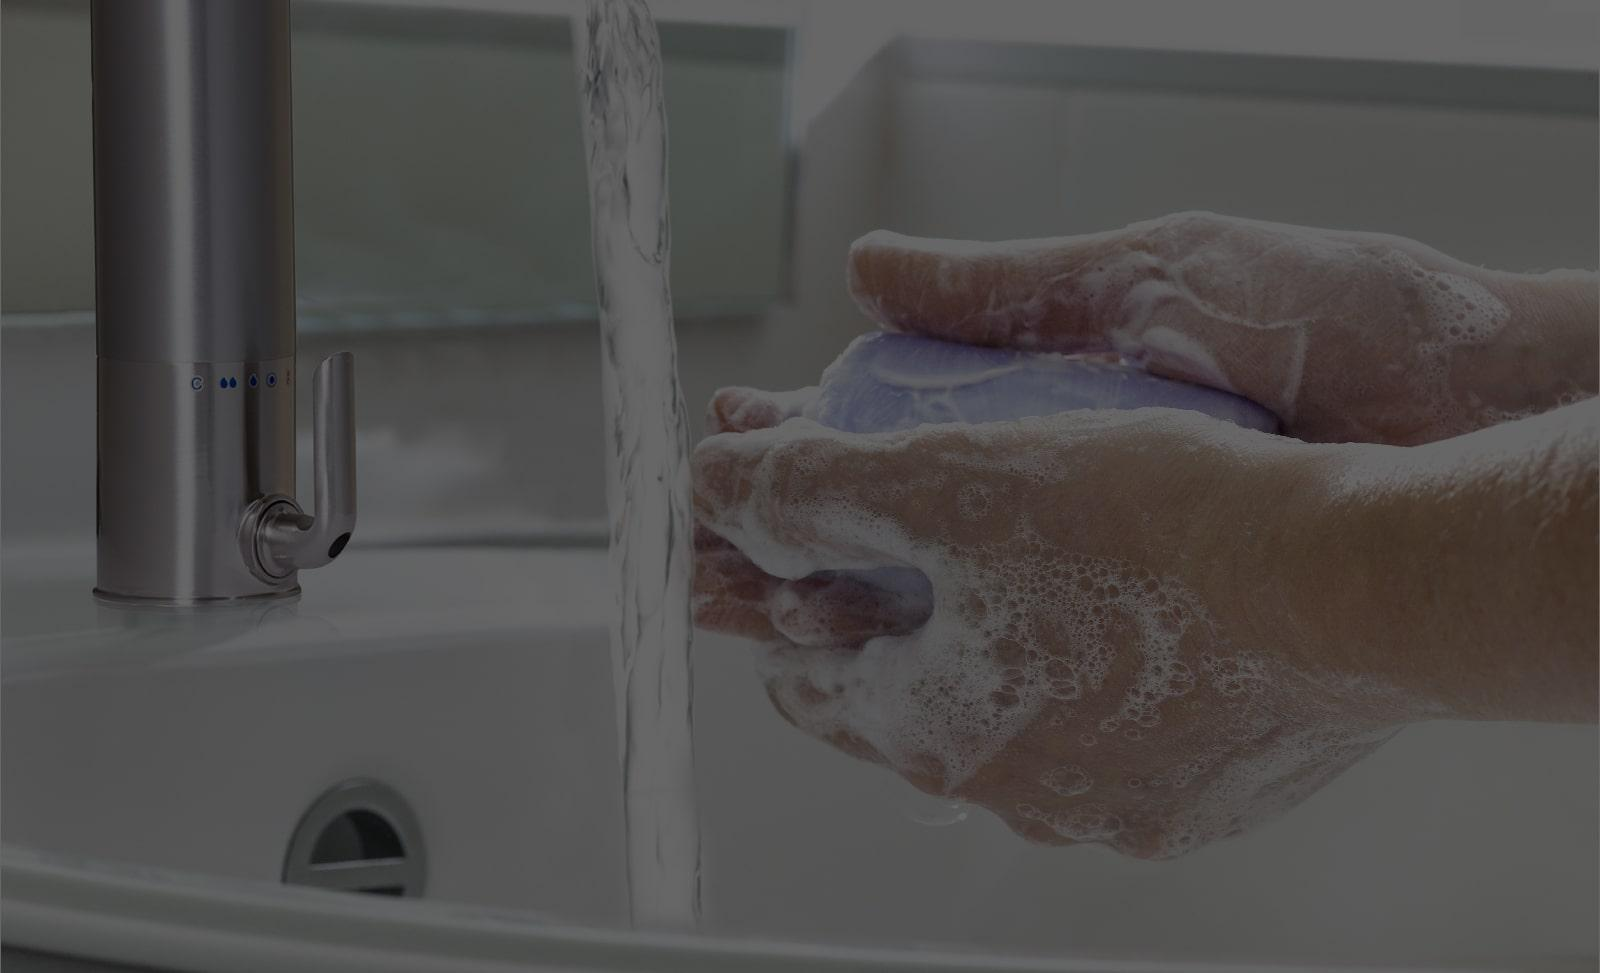 washing hands with warm water and soap in sink